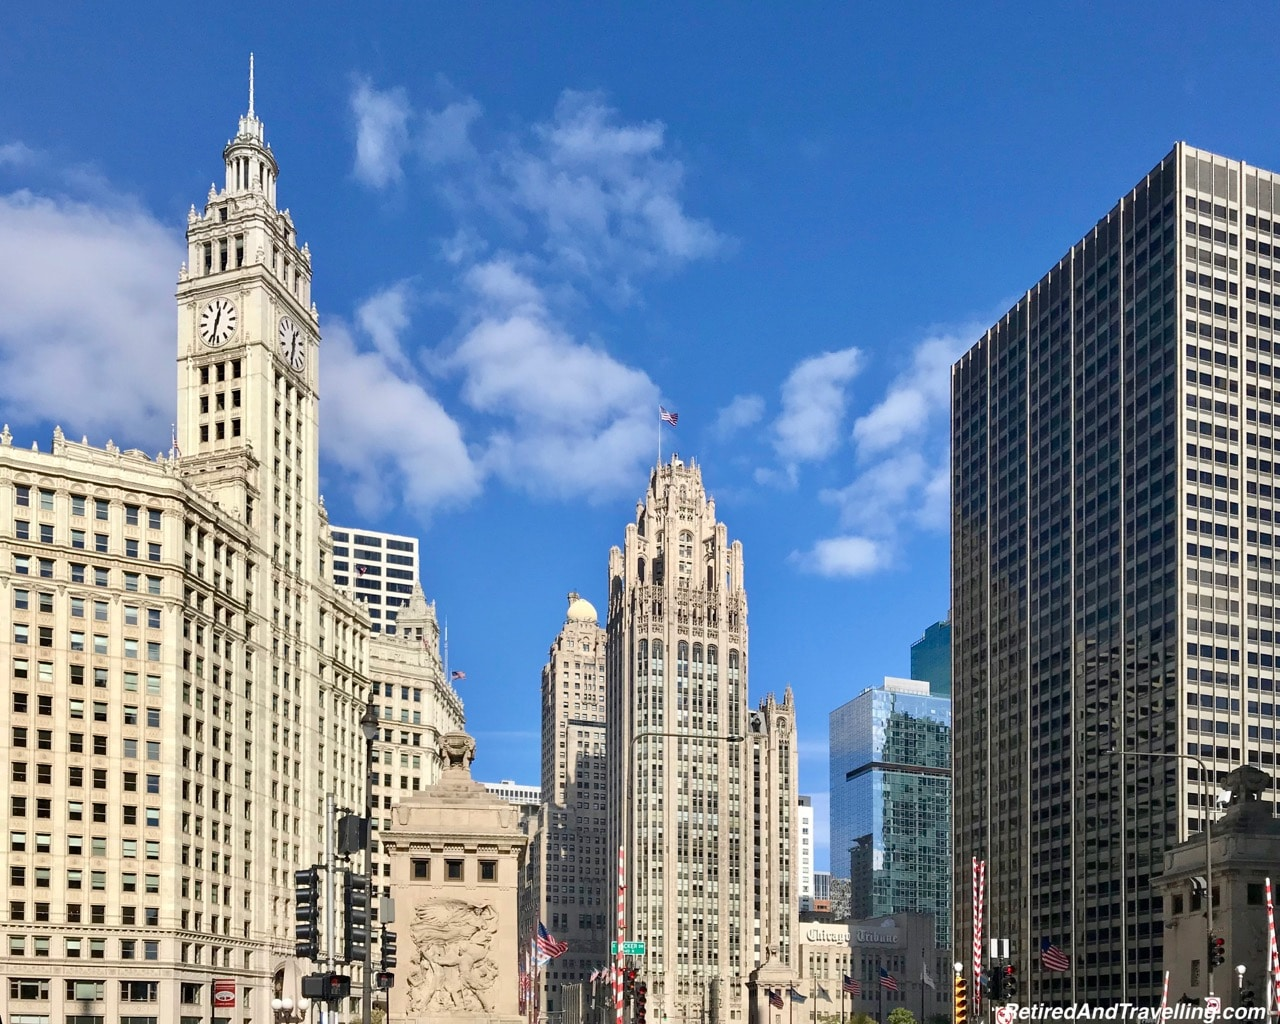 Intercontinental Chicago, Chicago Tribune and Wrigley Building - Eclectic Chicago Architecture.jpg